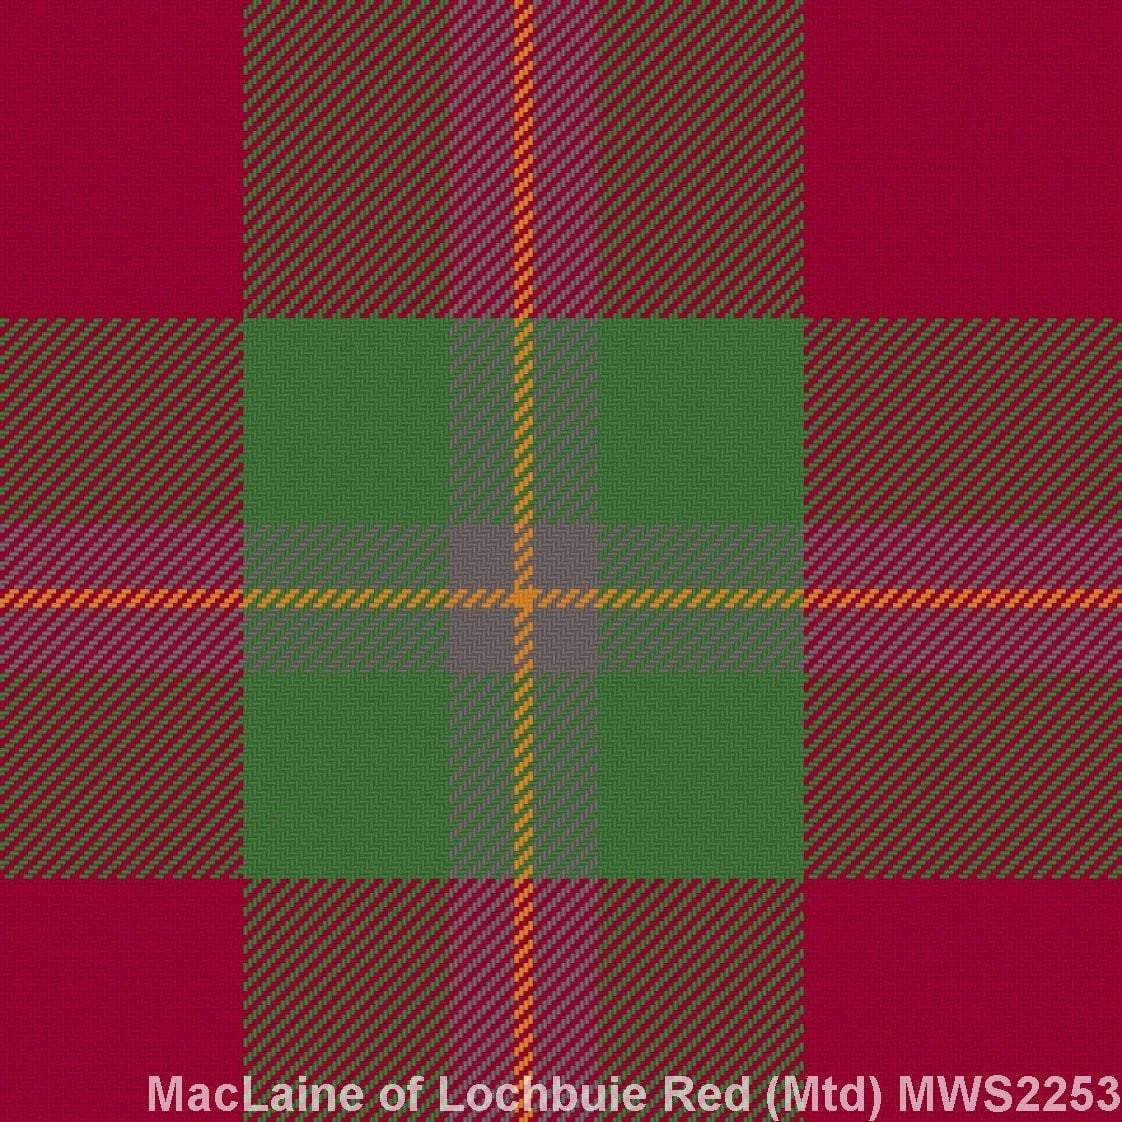 MacLaine of Lochbuie Red Muted